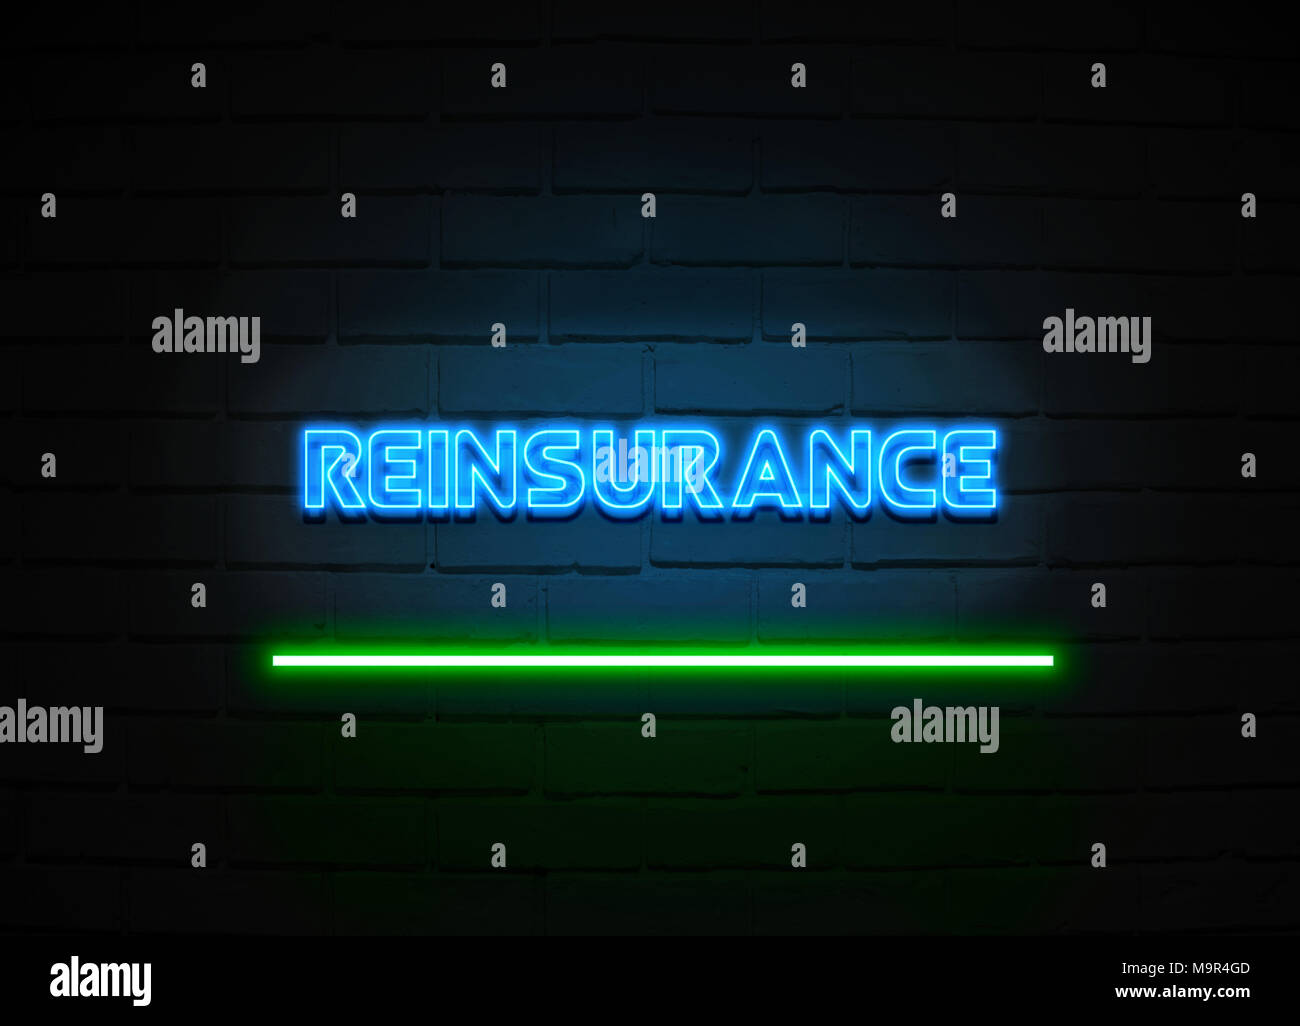 Reinsurance neon sign - Glowing Neon Sign on brickwall wall - 3D rendered royalty free stock illustration. - Stock Image